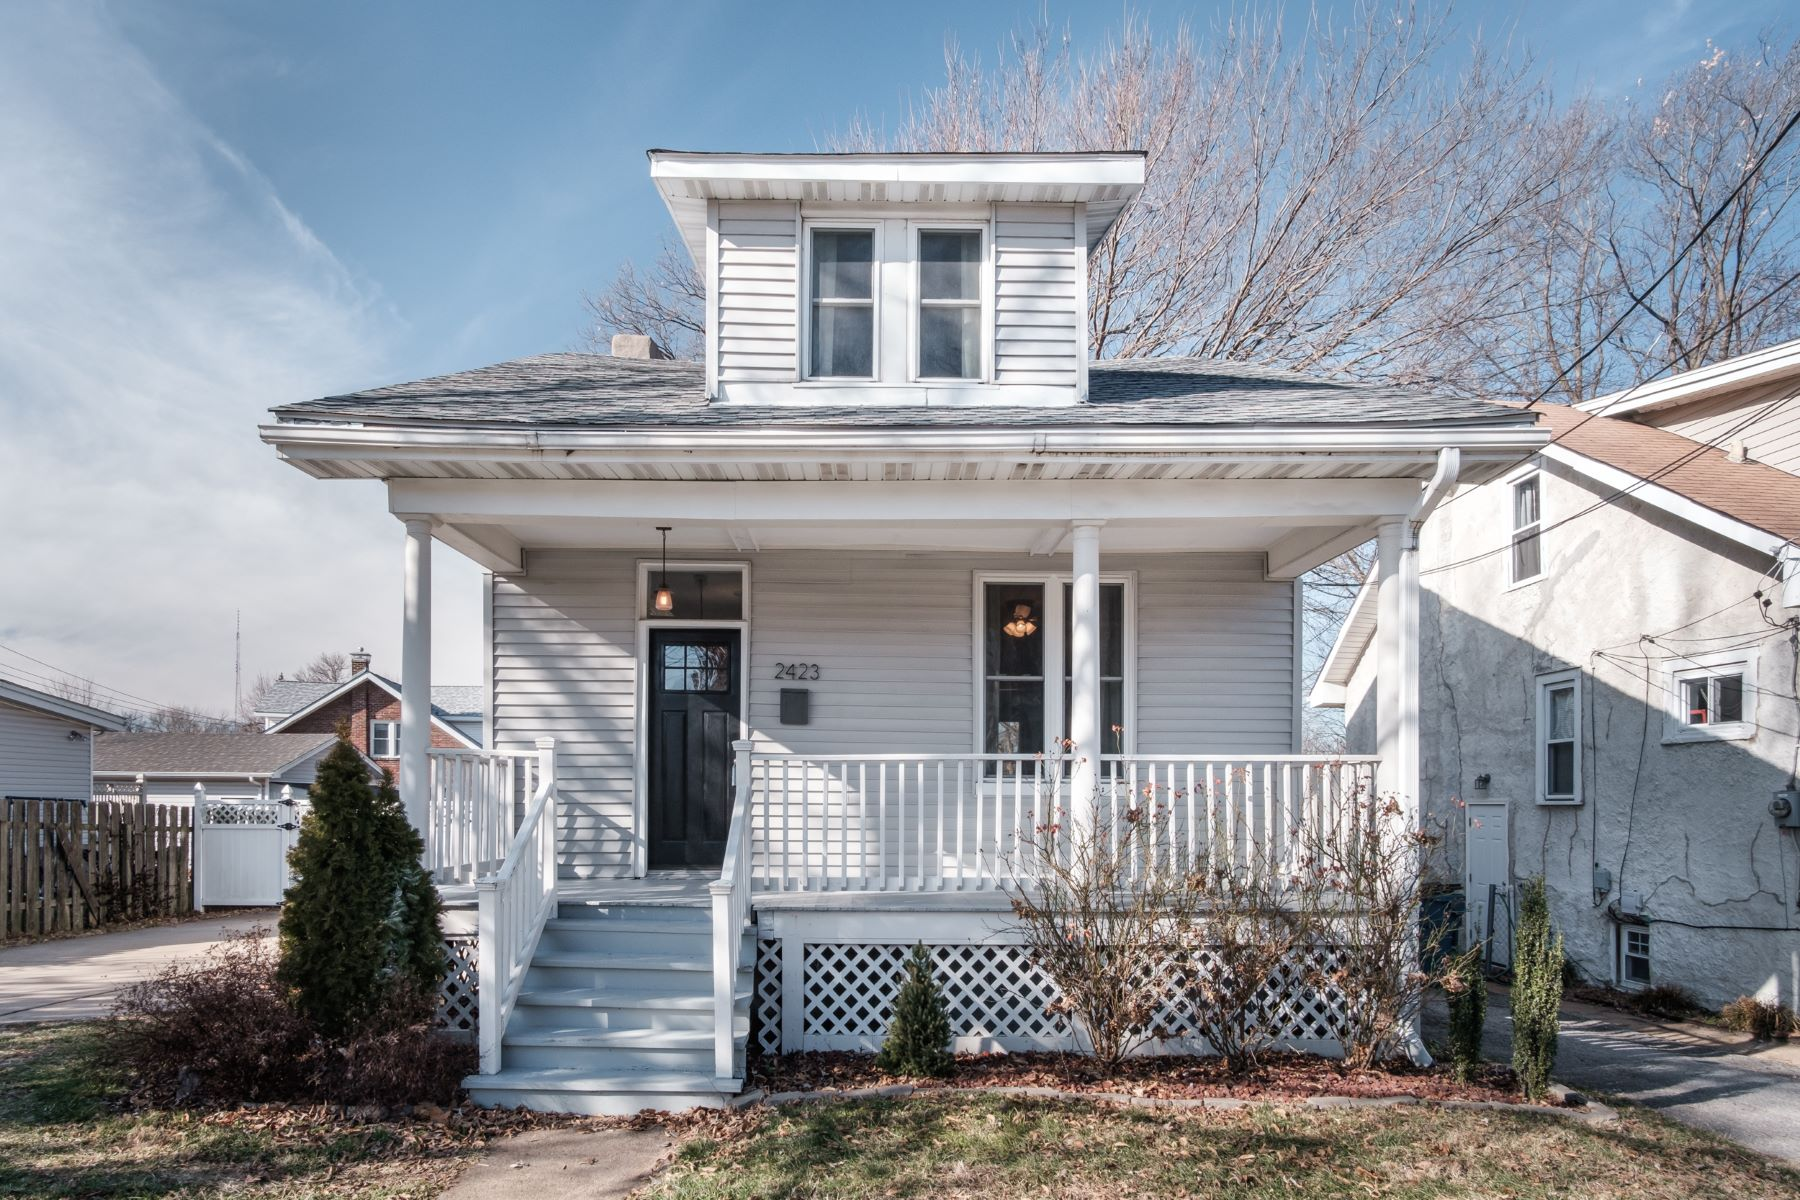 Single Family Homes for Sale at Charming 2 bed 1 bath in Maplewood 2423 Florent Avenue Maplewood, Missouri 63143 United States